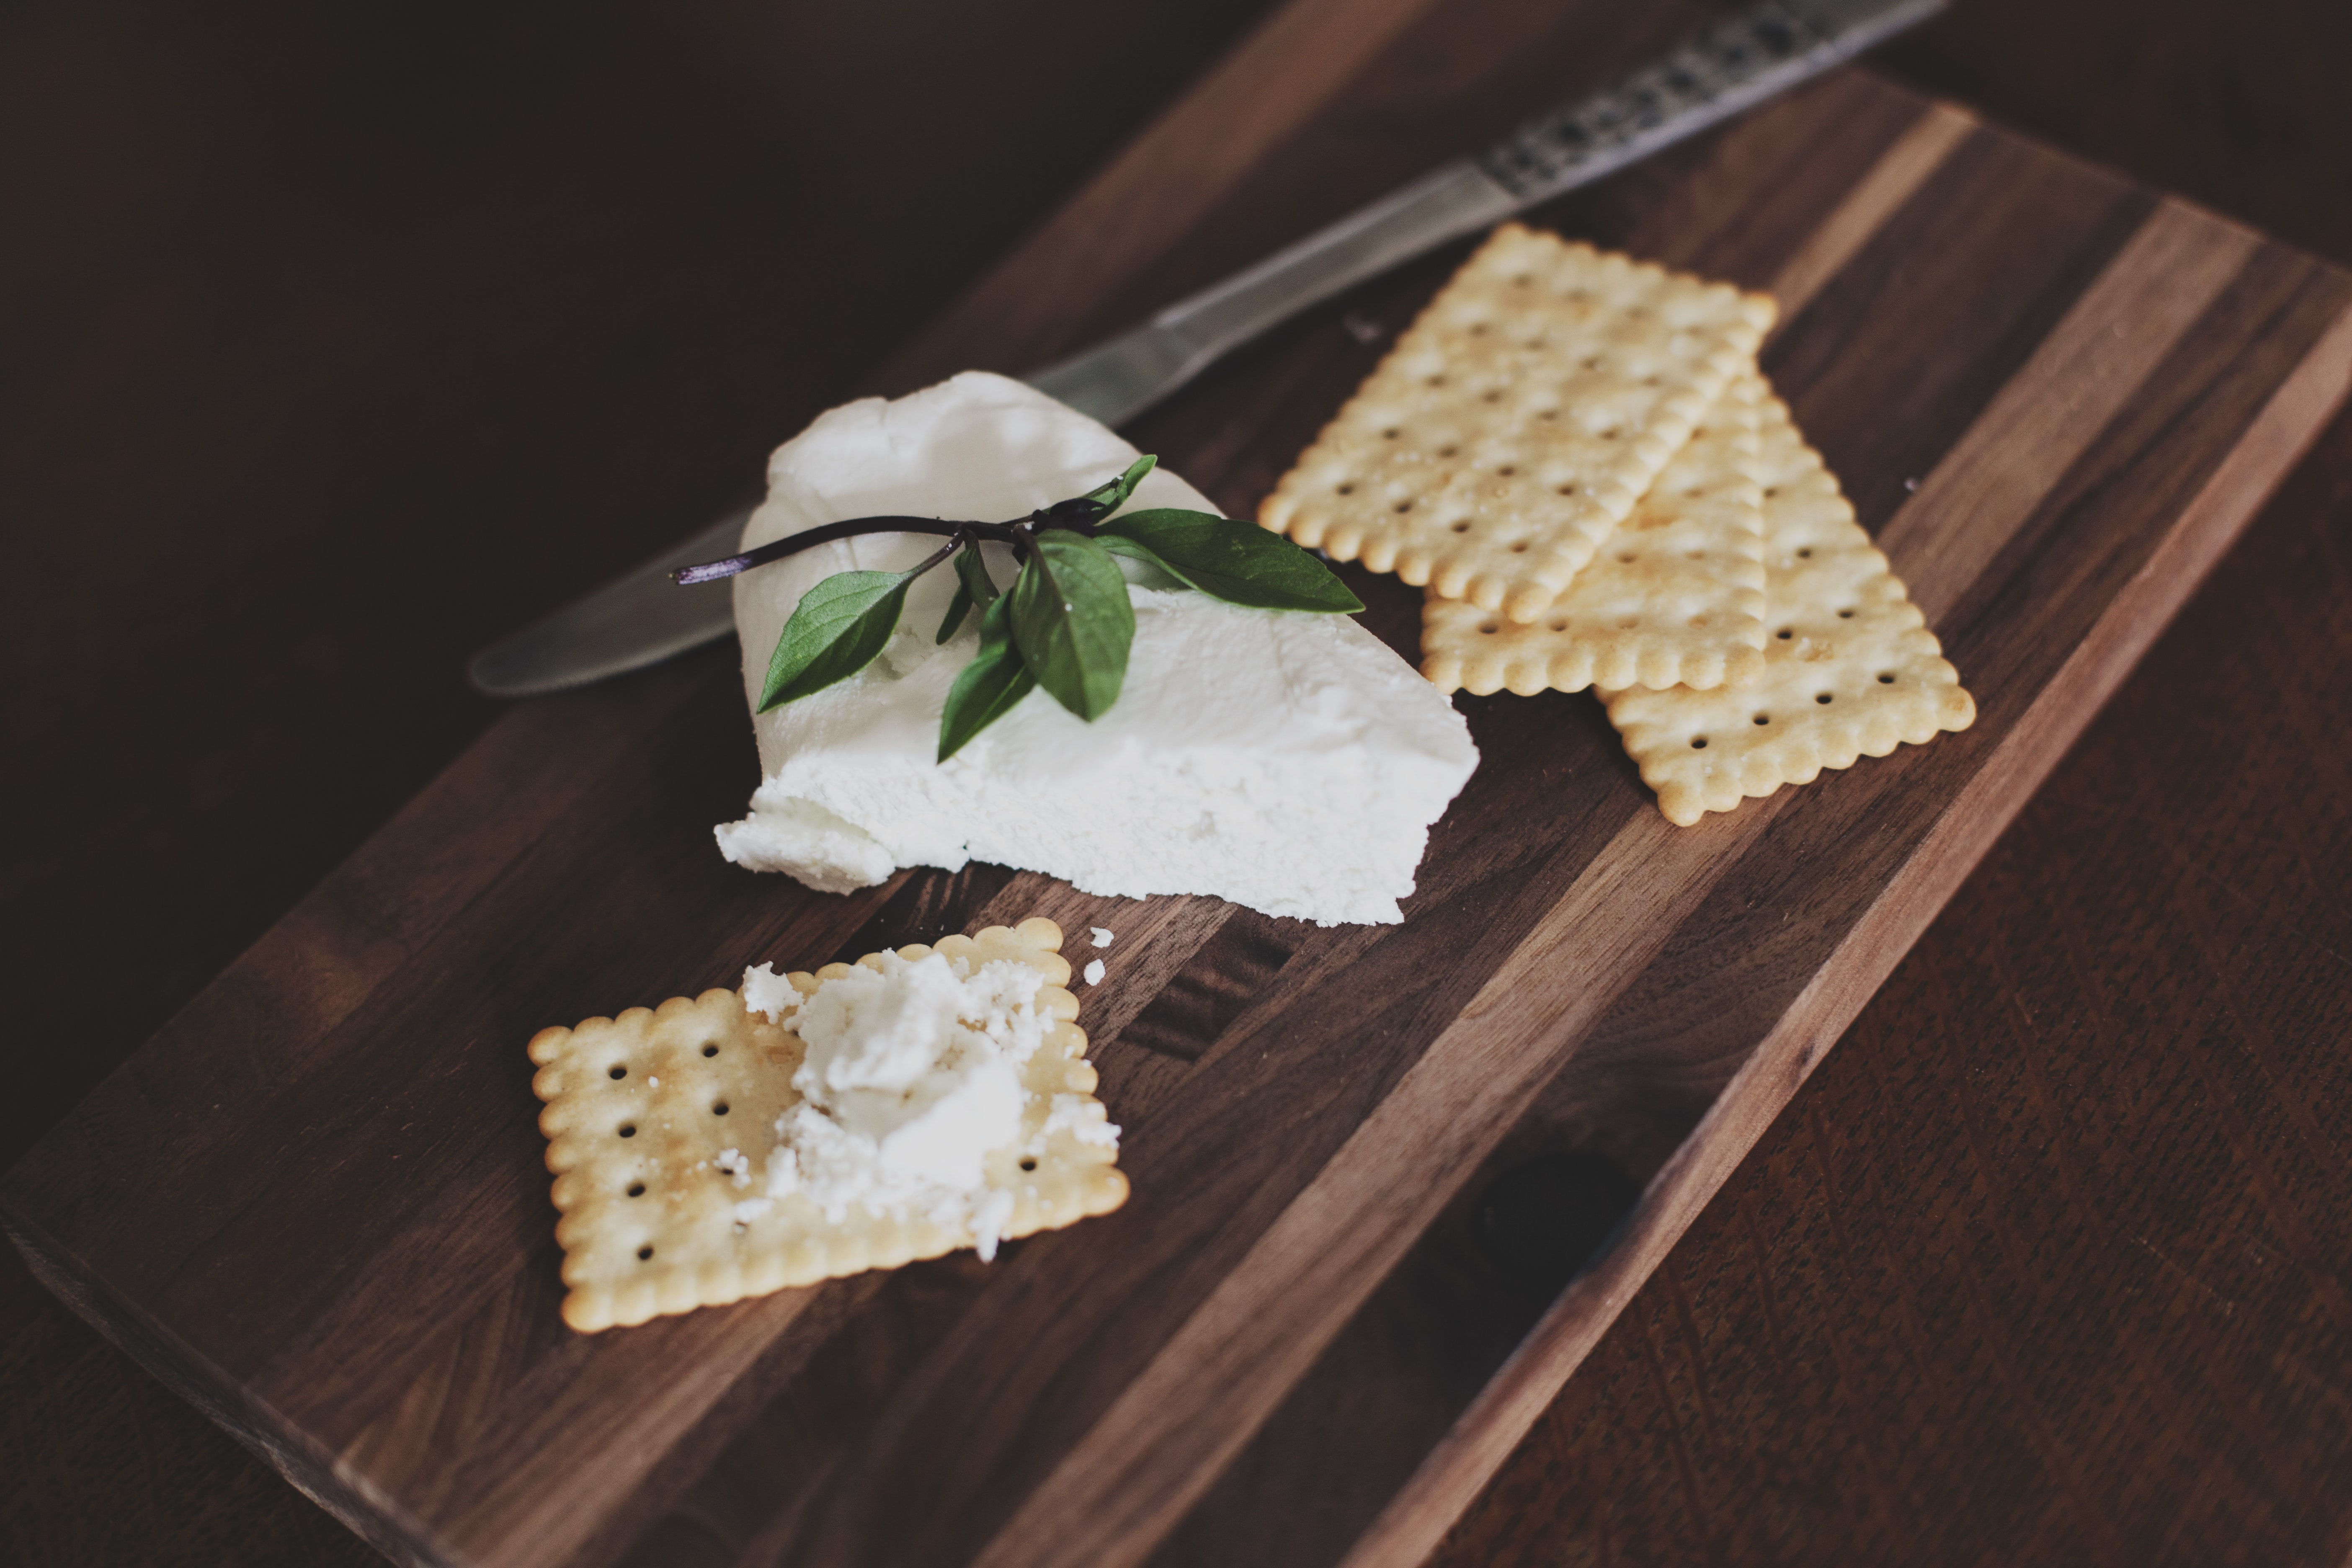 A slice of brie cheese and crackers.